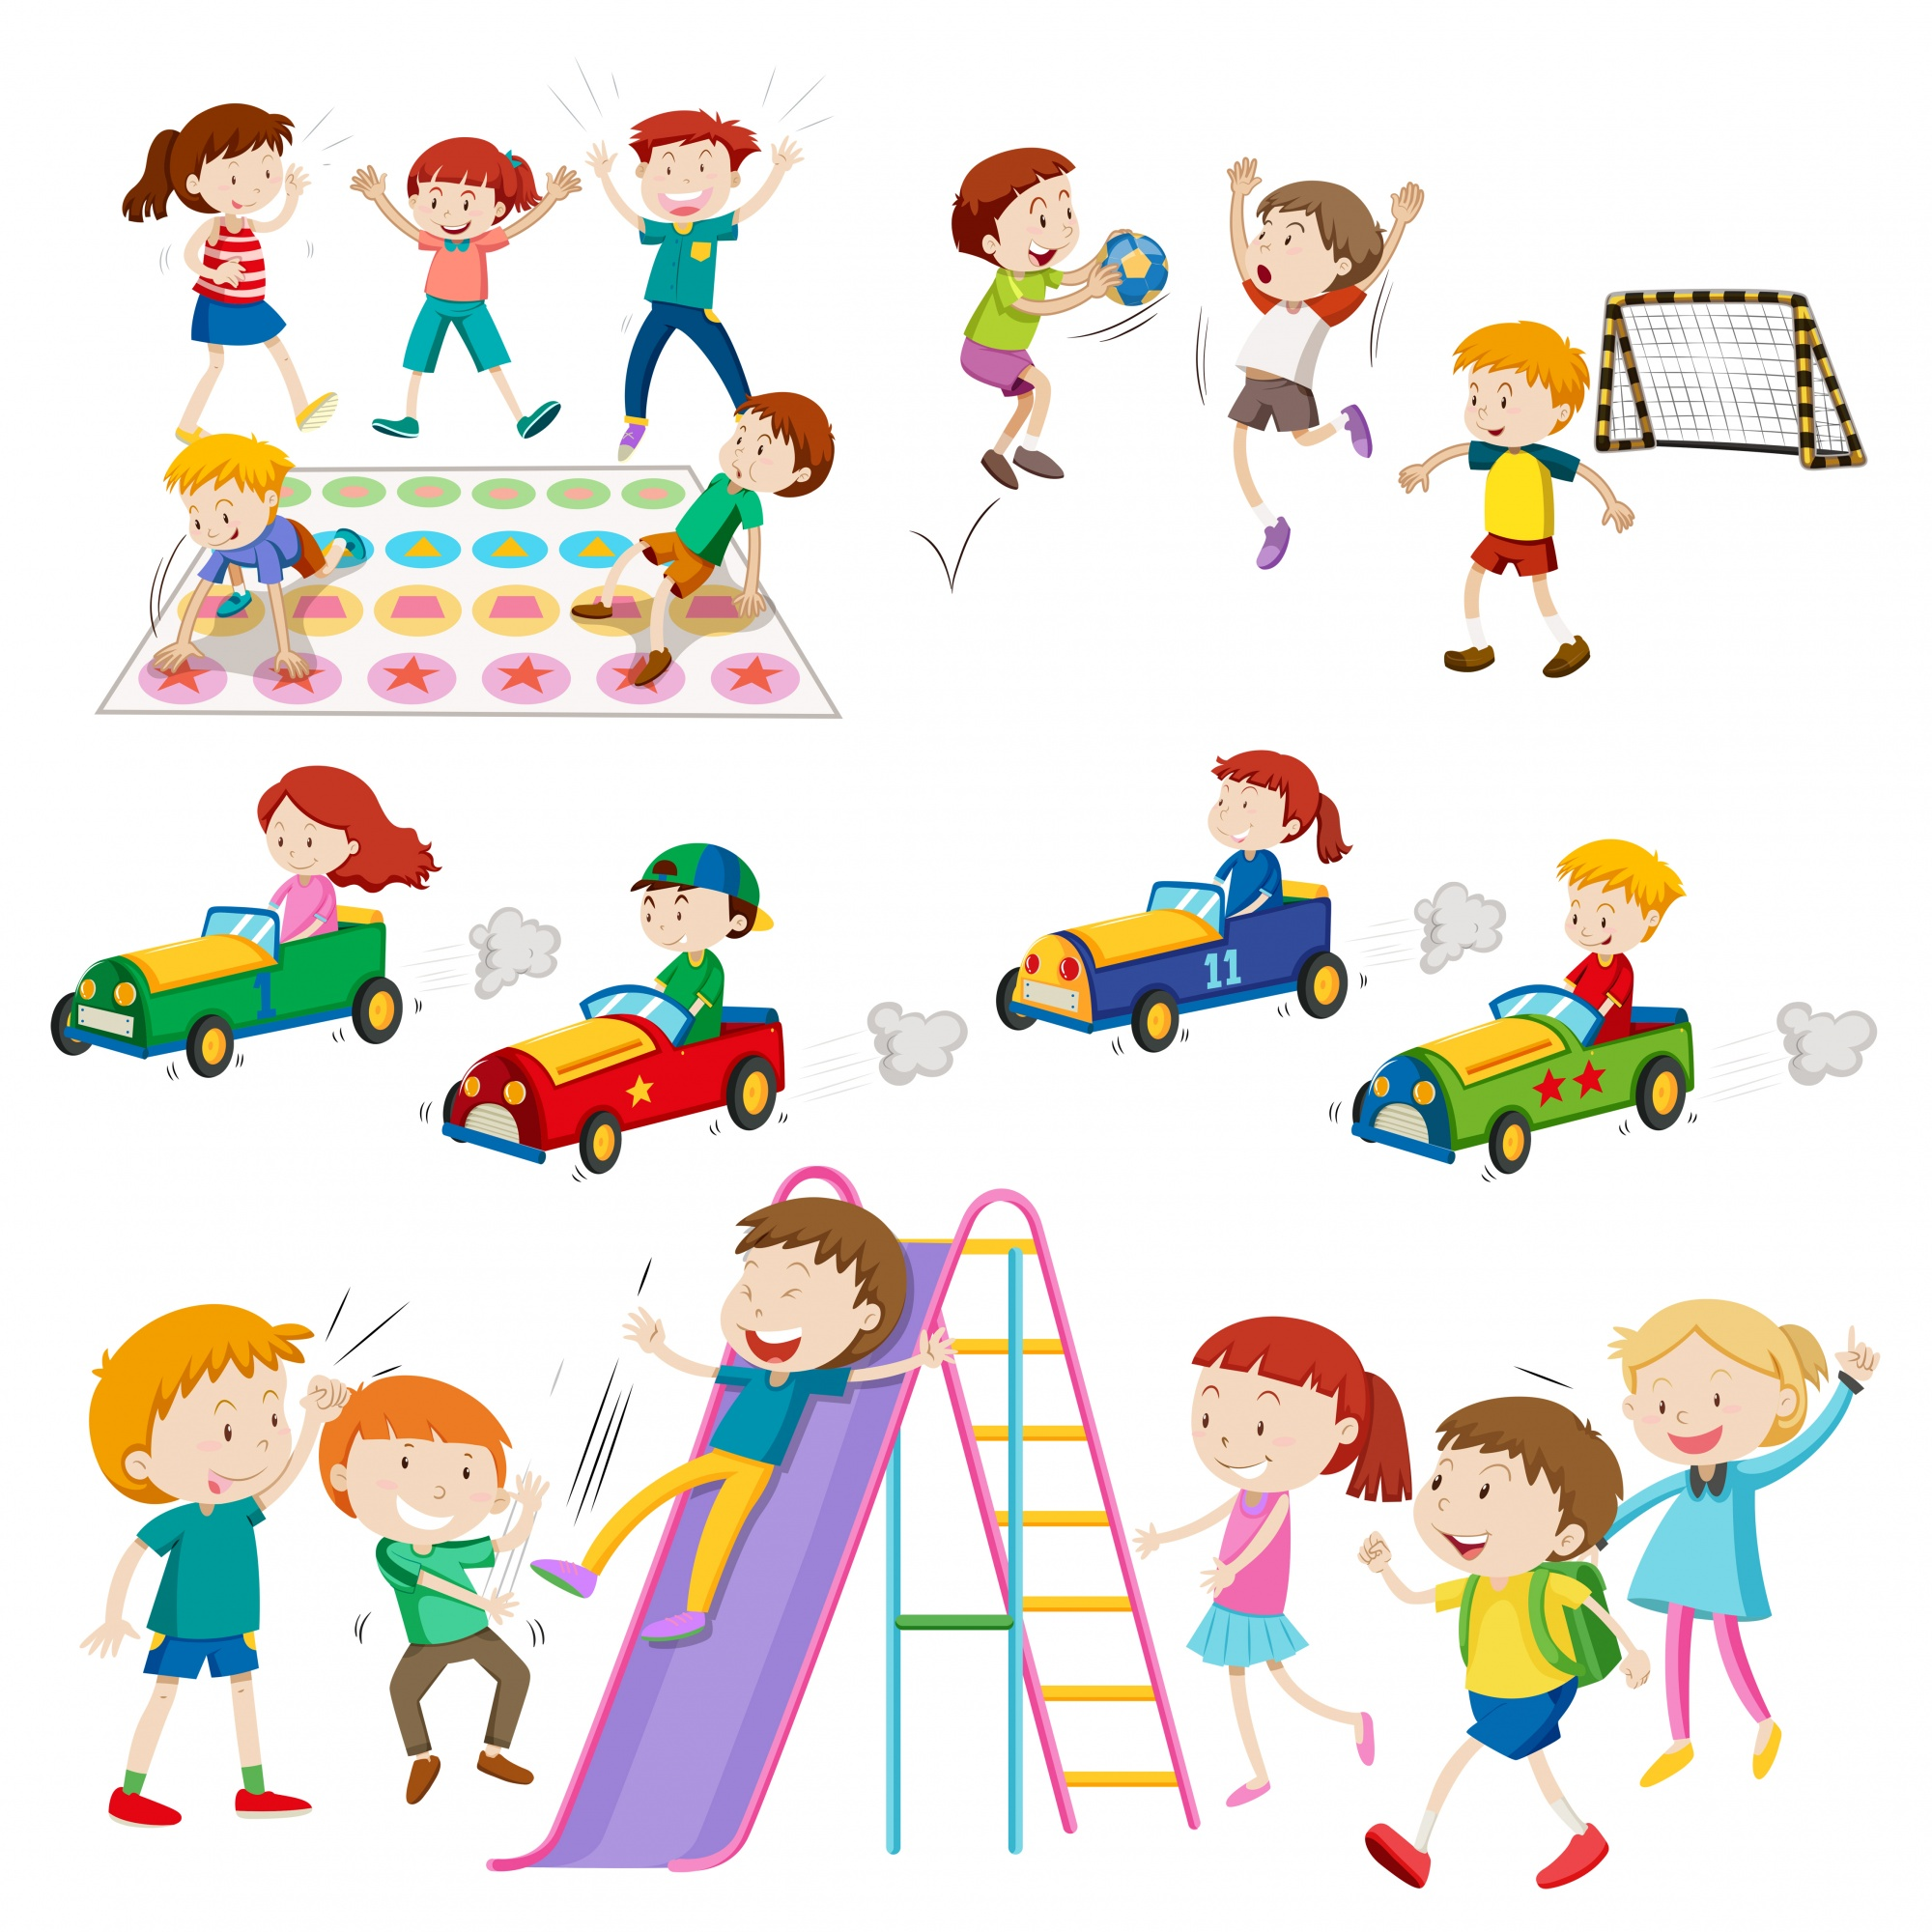 Children playing games and sports illustration